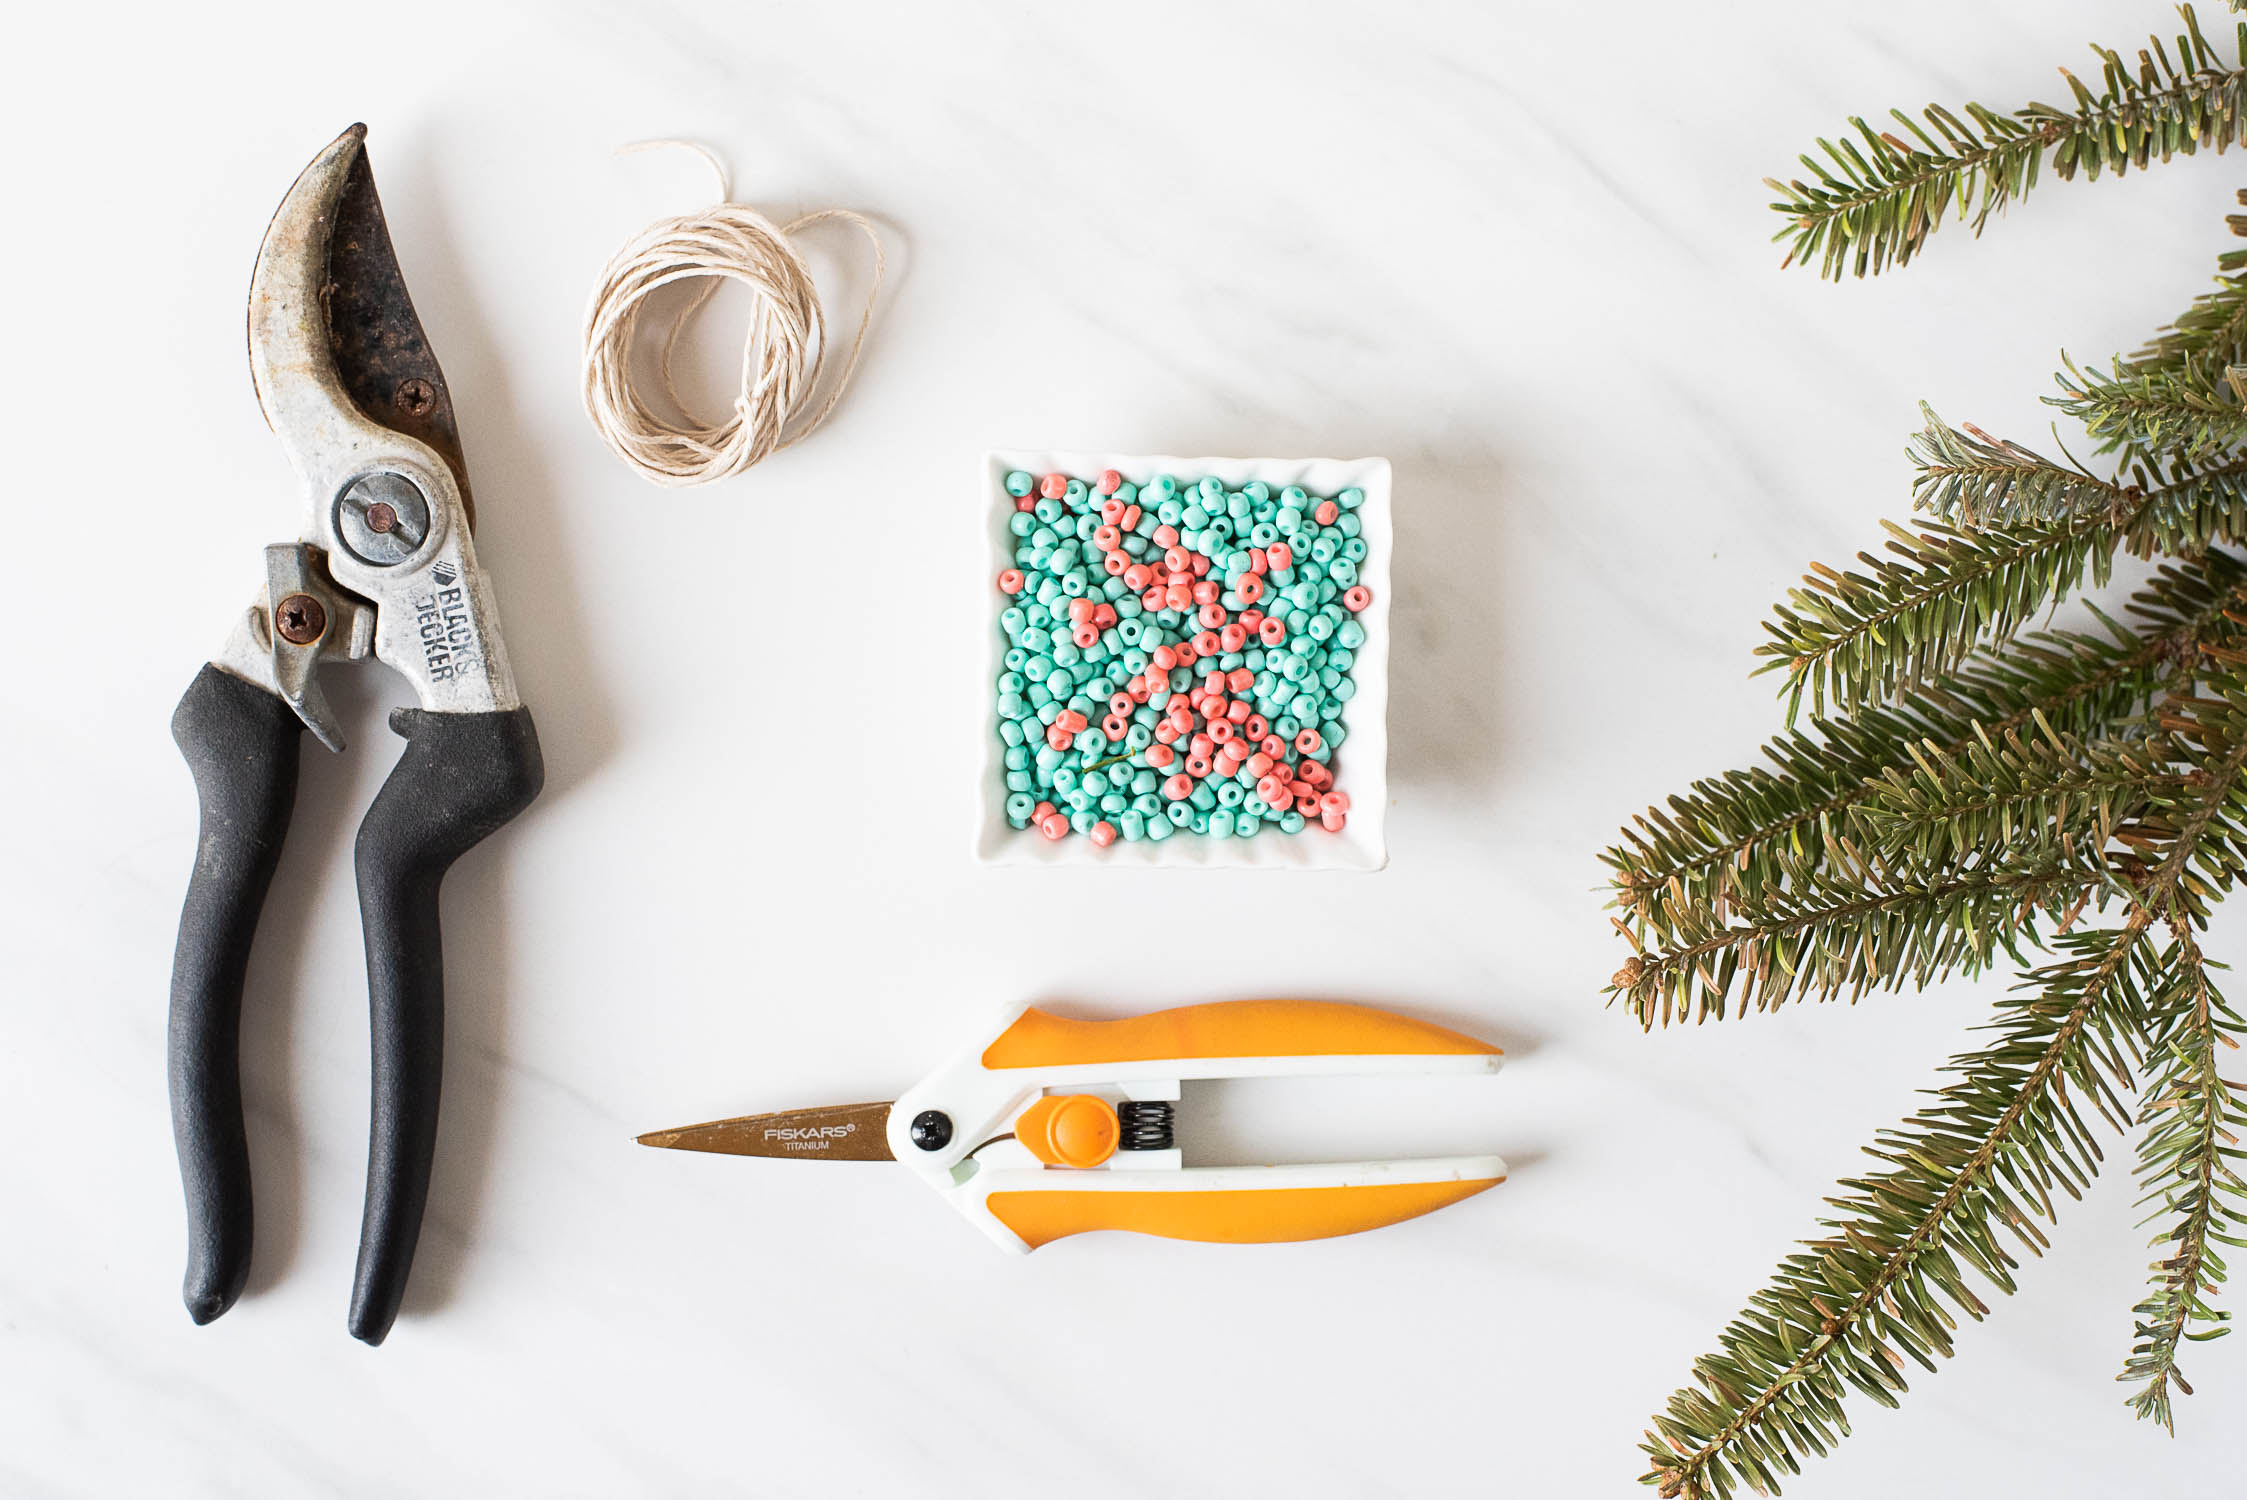 How to Upcycle Your Christmas Tree into an Adorable Table Runner